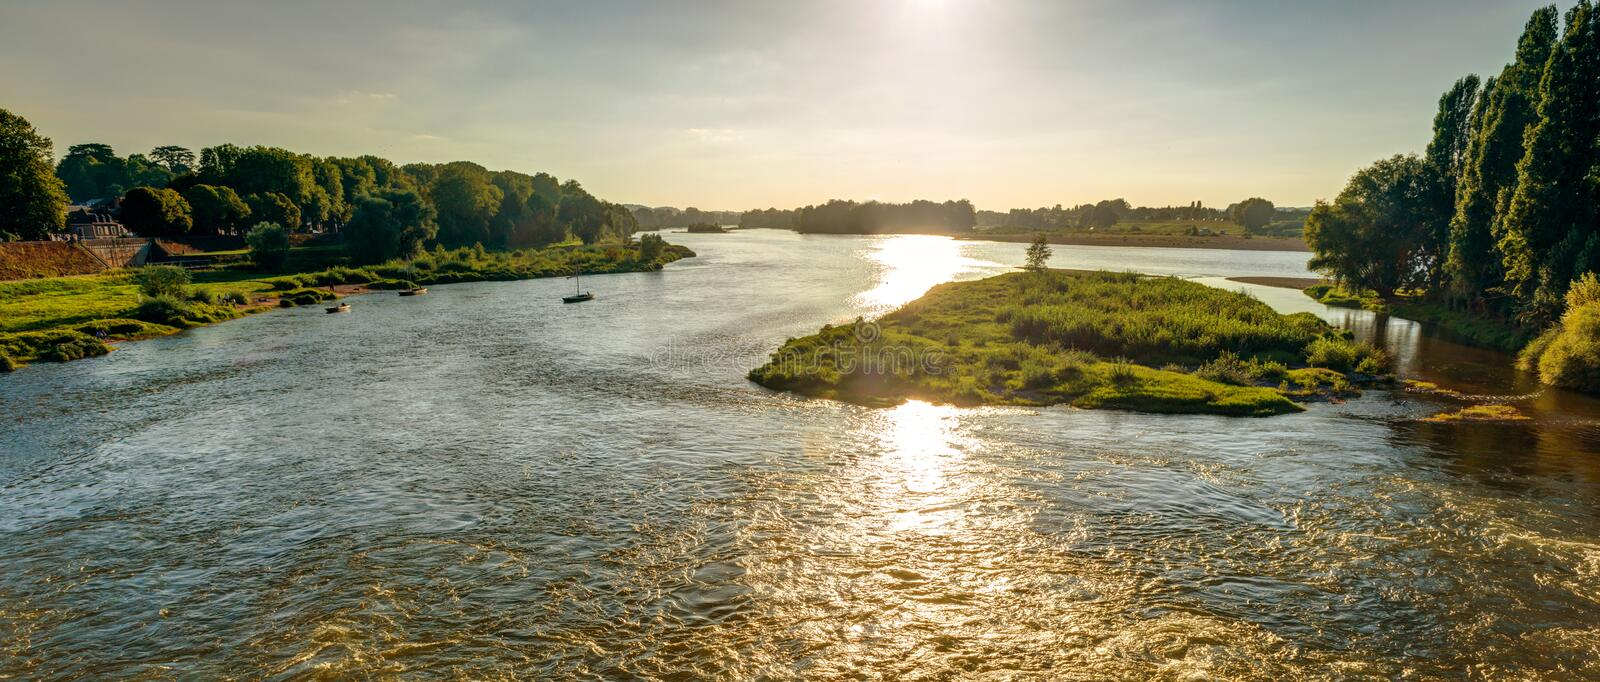 View of the Loire at sunset in Amboise, France royalty free stock photography